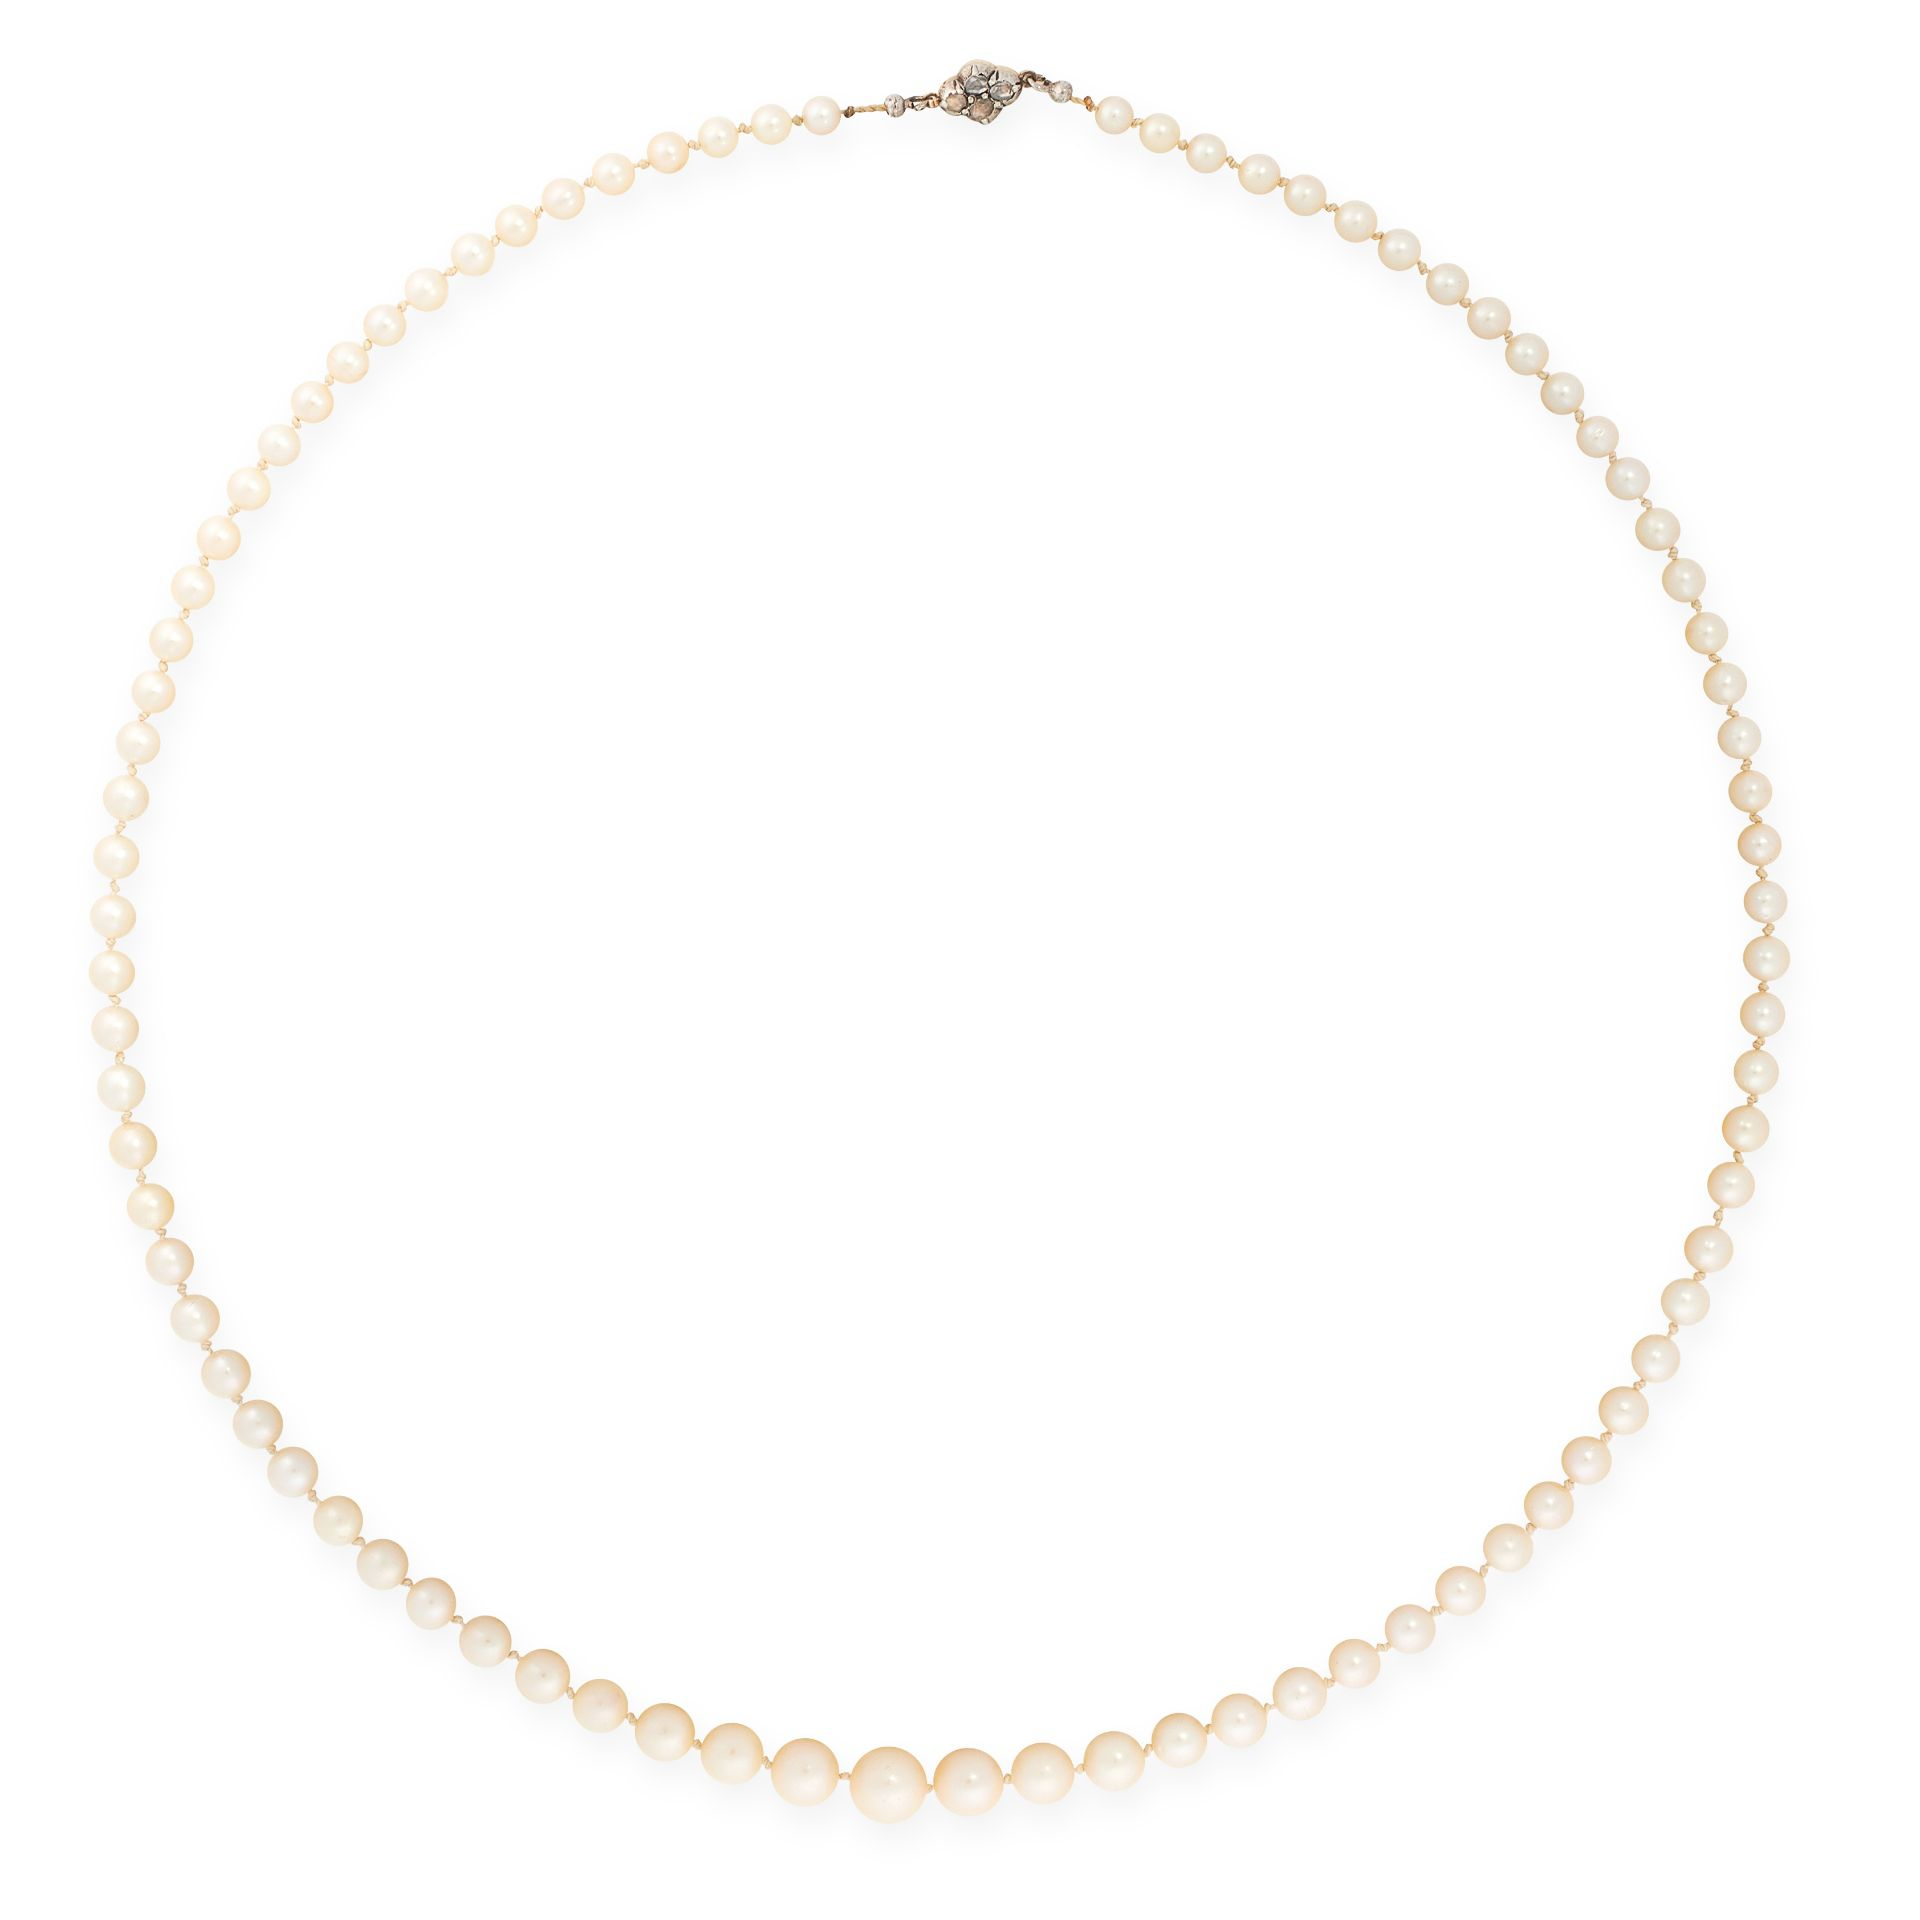 A PEARL AND DIAMOND NECKLACE in 18ct yellow gold and silver, comprising a single row of eighty-